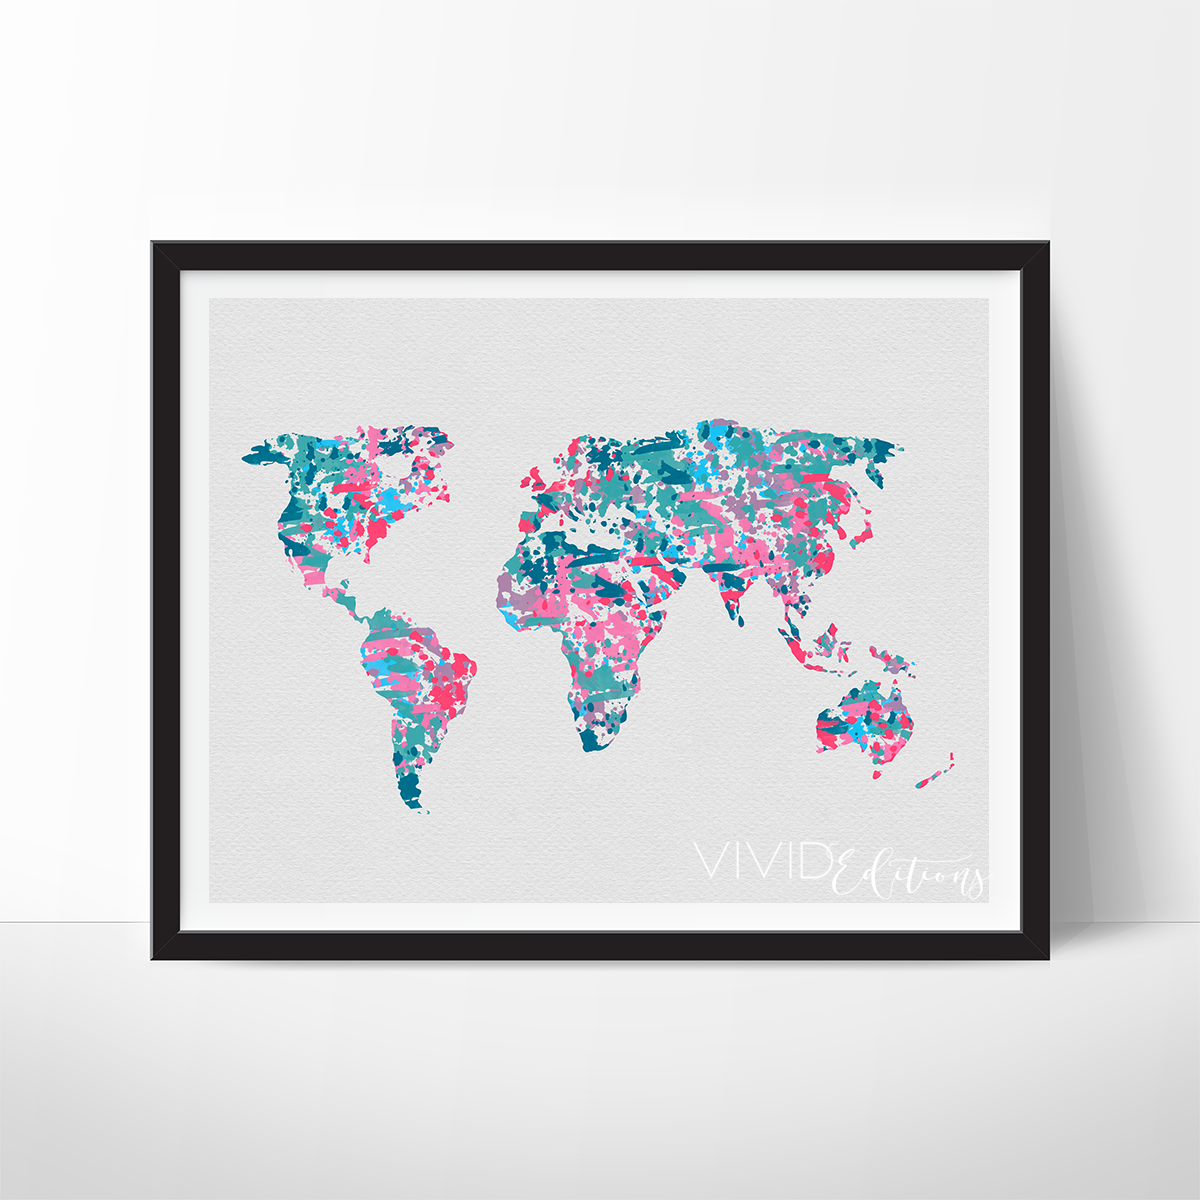 World map 2 watercolor art print cuadro world map 2 watercolor art vivideditions gumiabroncs Image collections